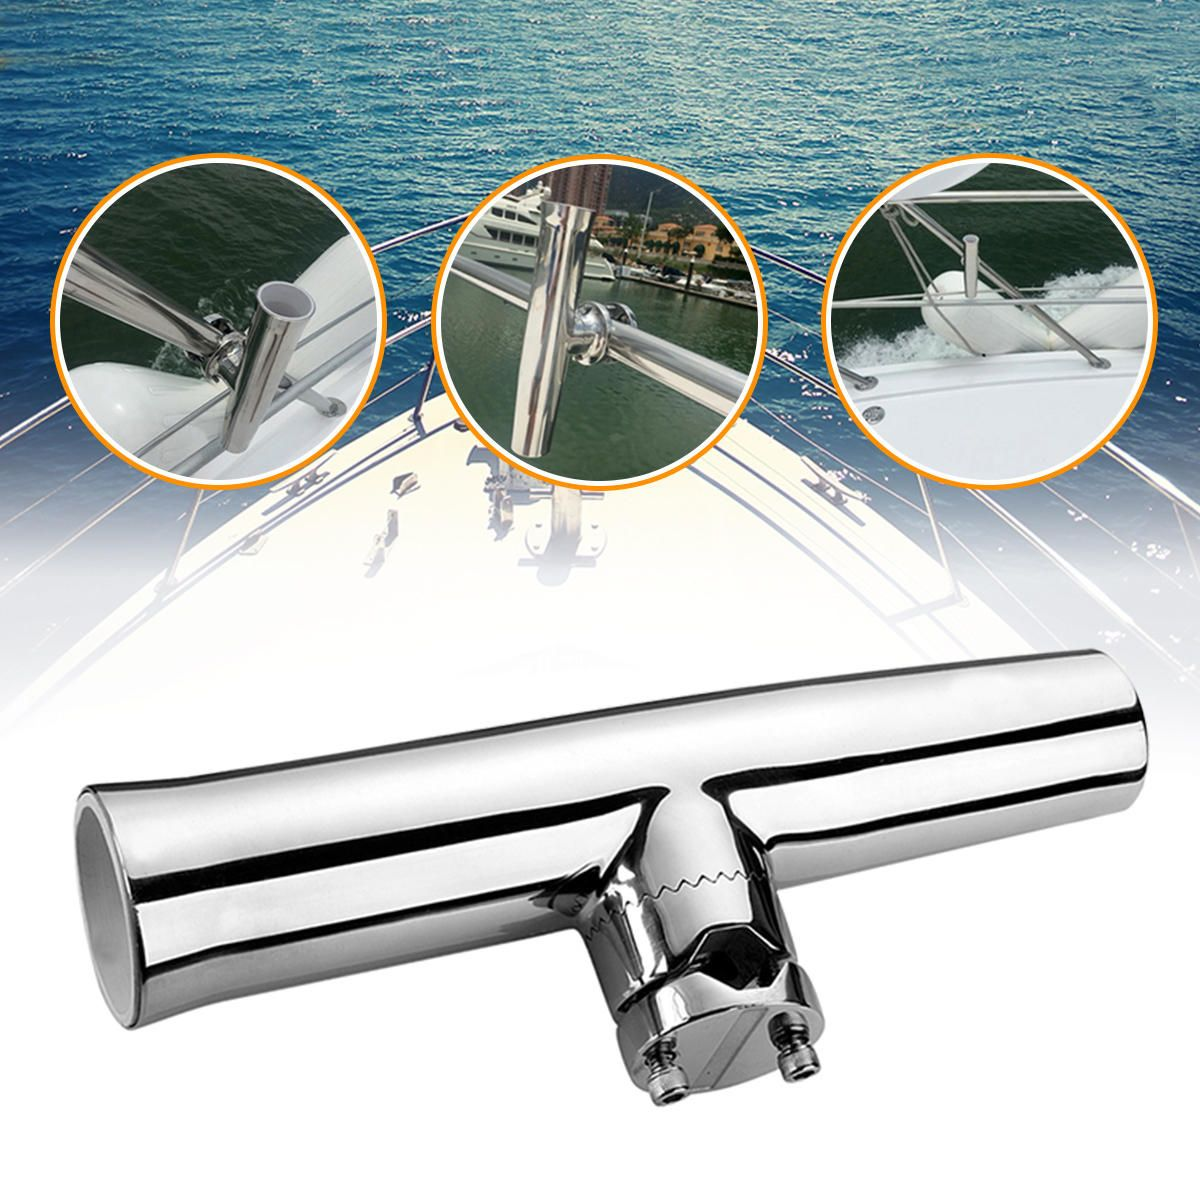 KFV US$47.14 316 Stainless Steel 7/8''-1'' Tube Fishing Rod Holder Boat Tackle Clamp On Rail Mount